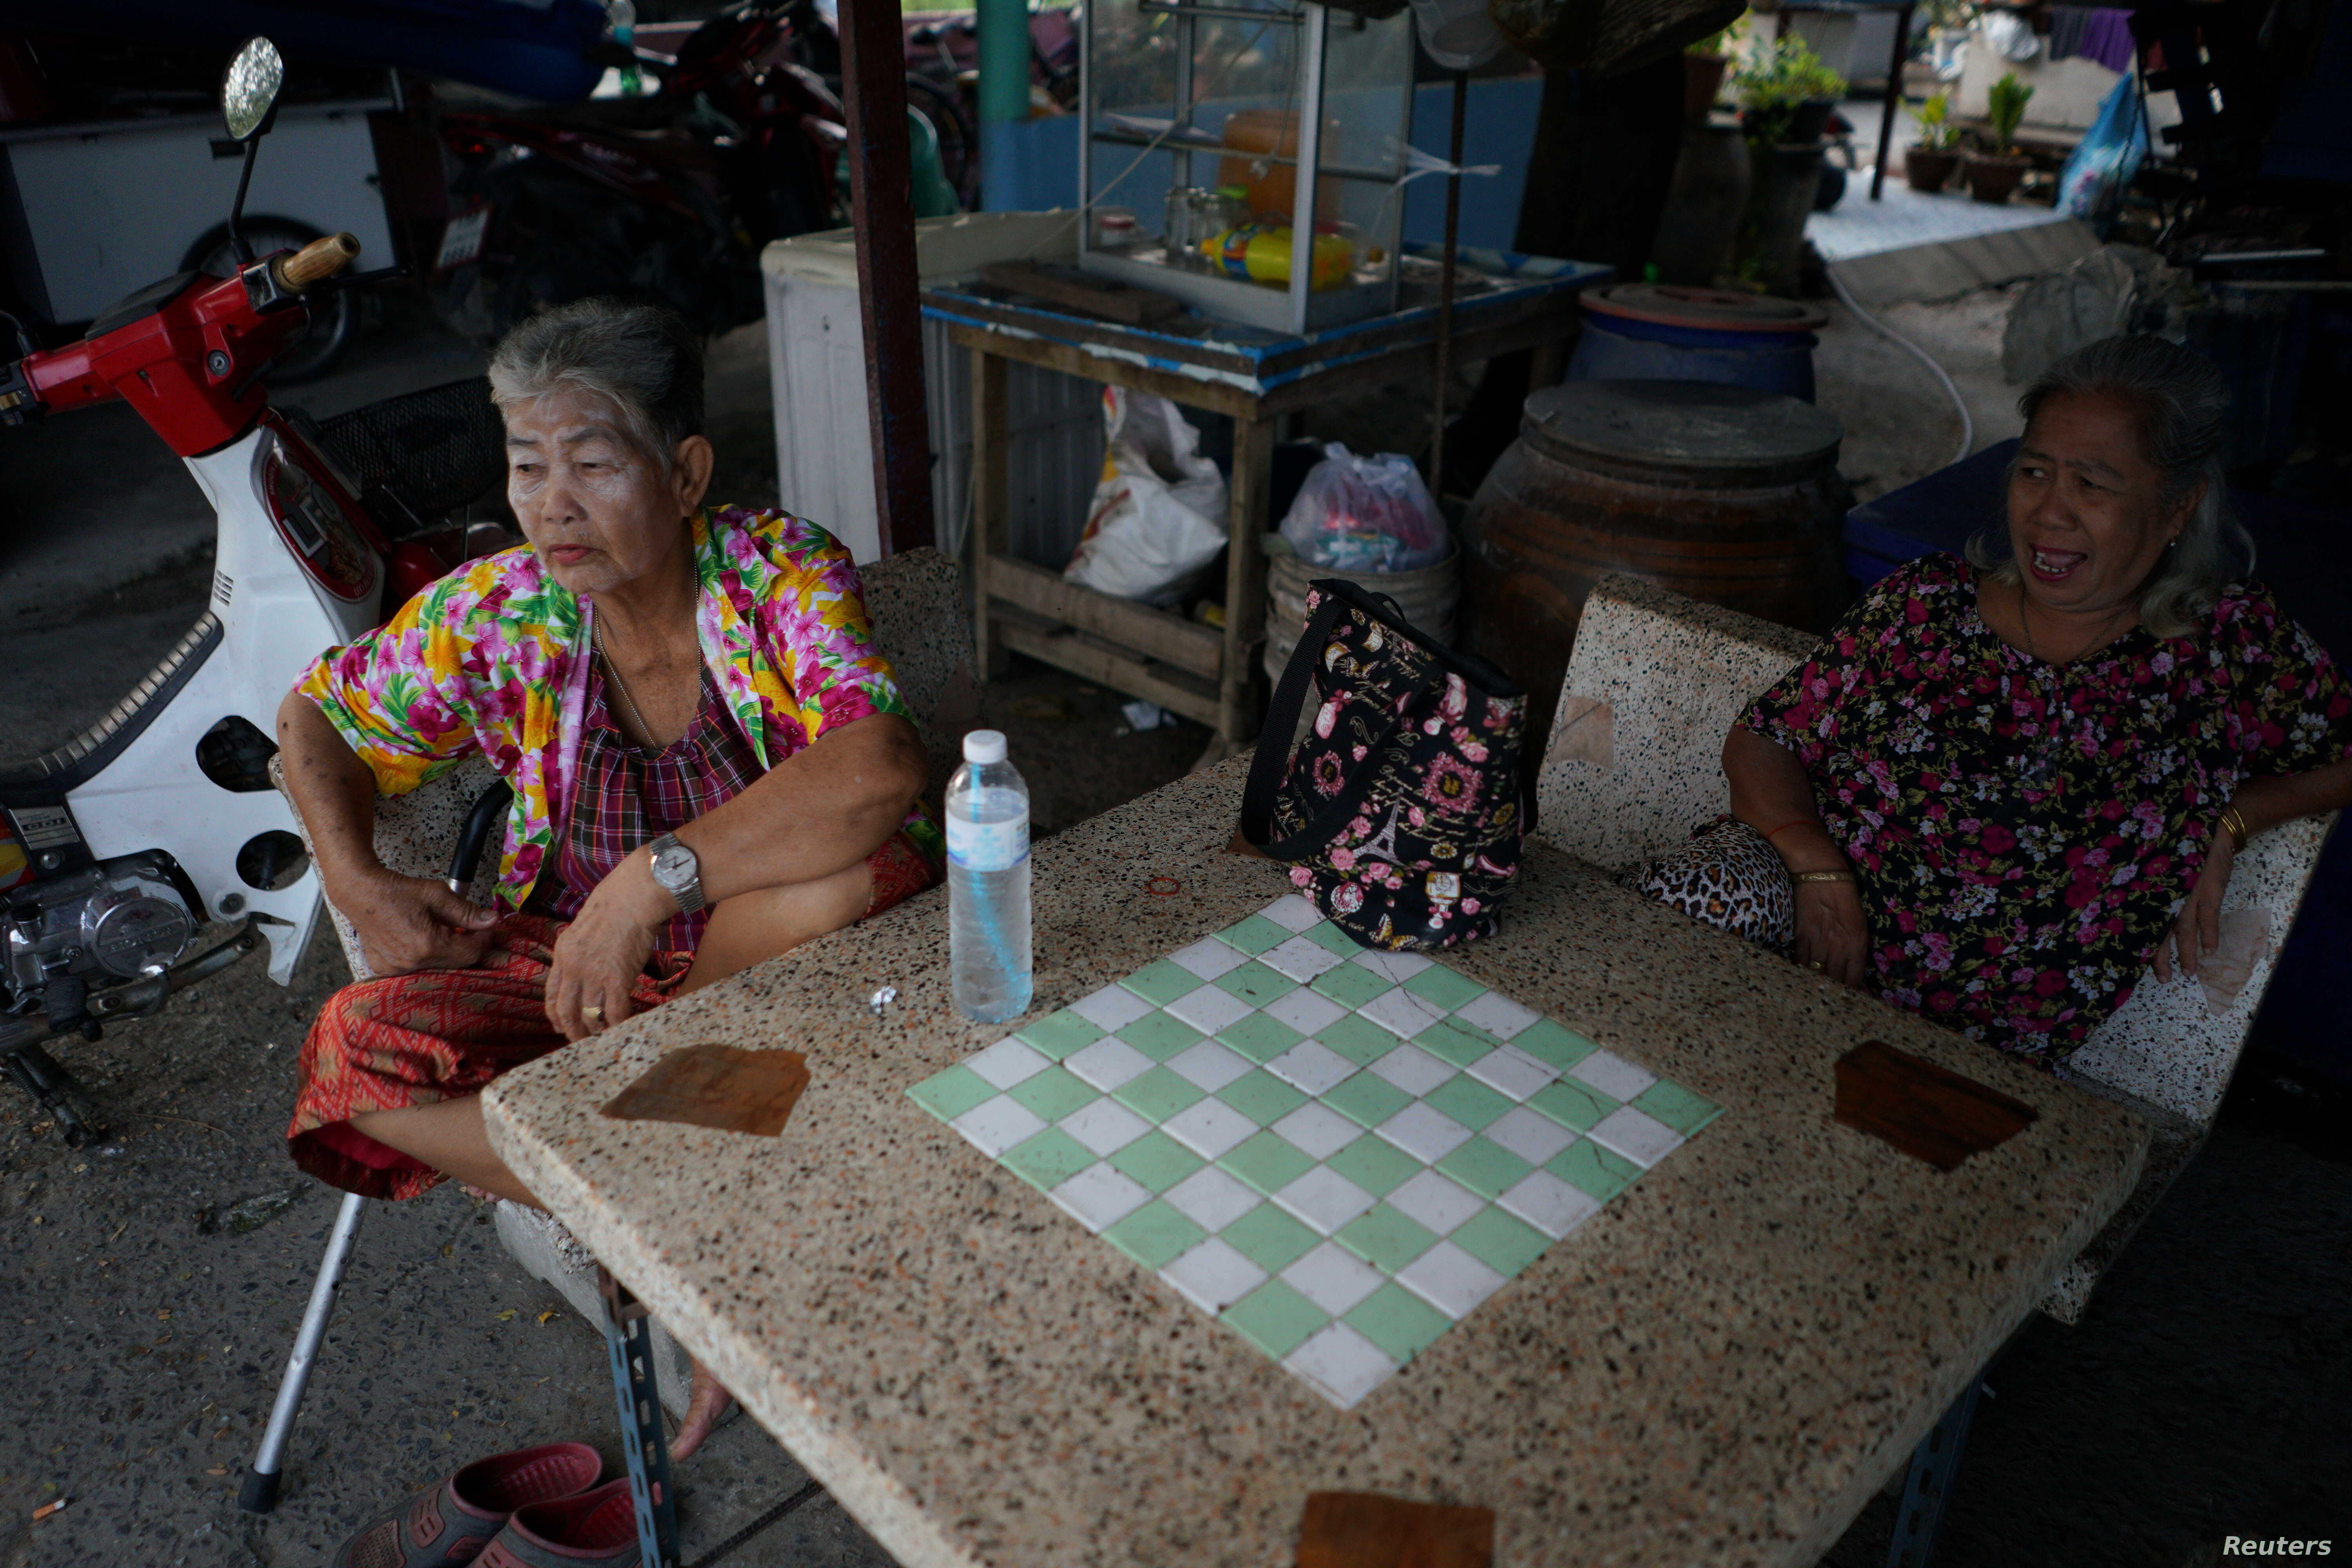 Somjit Teeraroj (L), 77, and Poonsri Seangnual (R), 63, who study at the School for the Elderly in Chiang Rak Noi subdistrict, spend time with each other at a shop in Ayutthaya, Thailand, April 26, 2018.